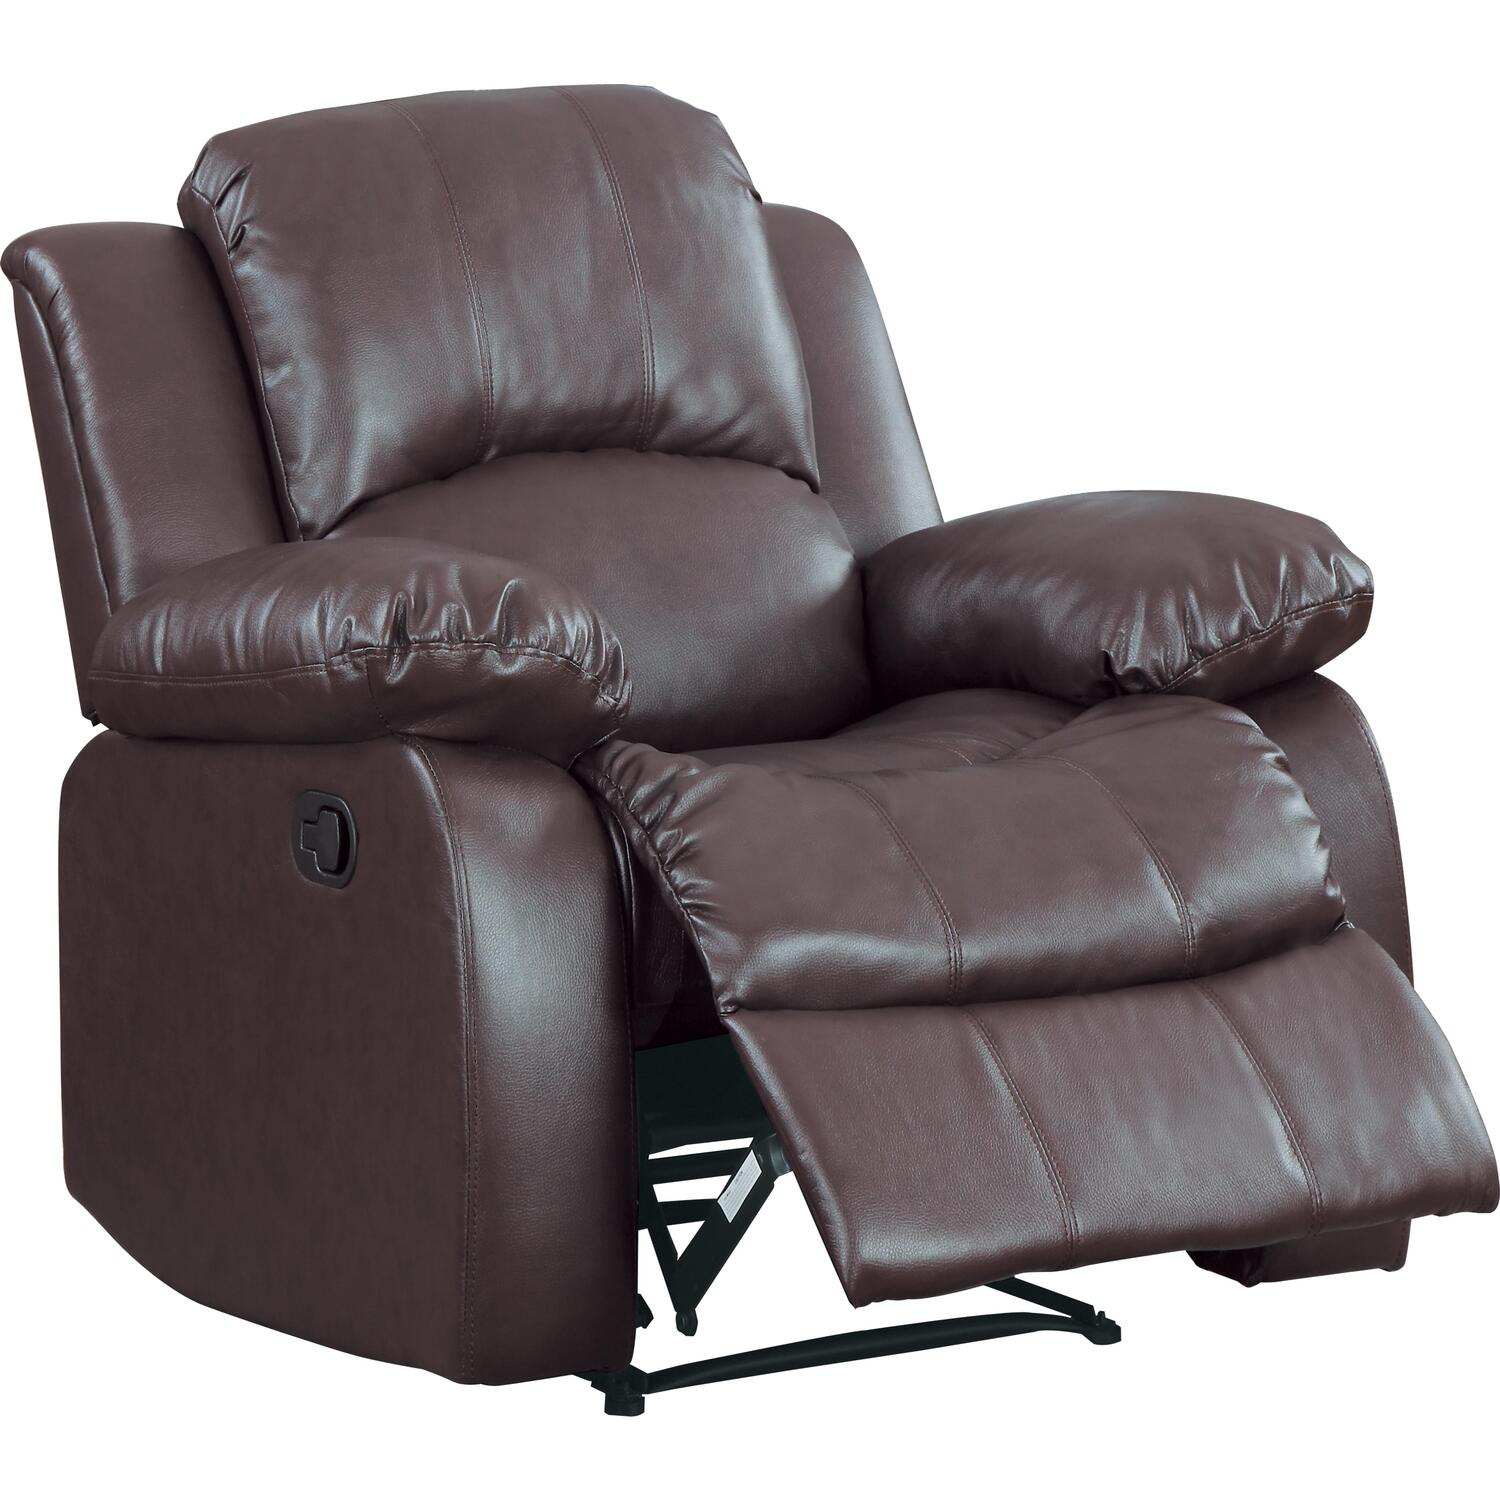 ll wall recliner hugger ii dimensions capital barcalounger leather chair htm backstore club